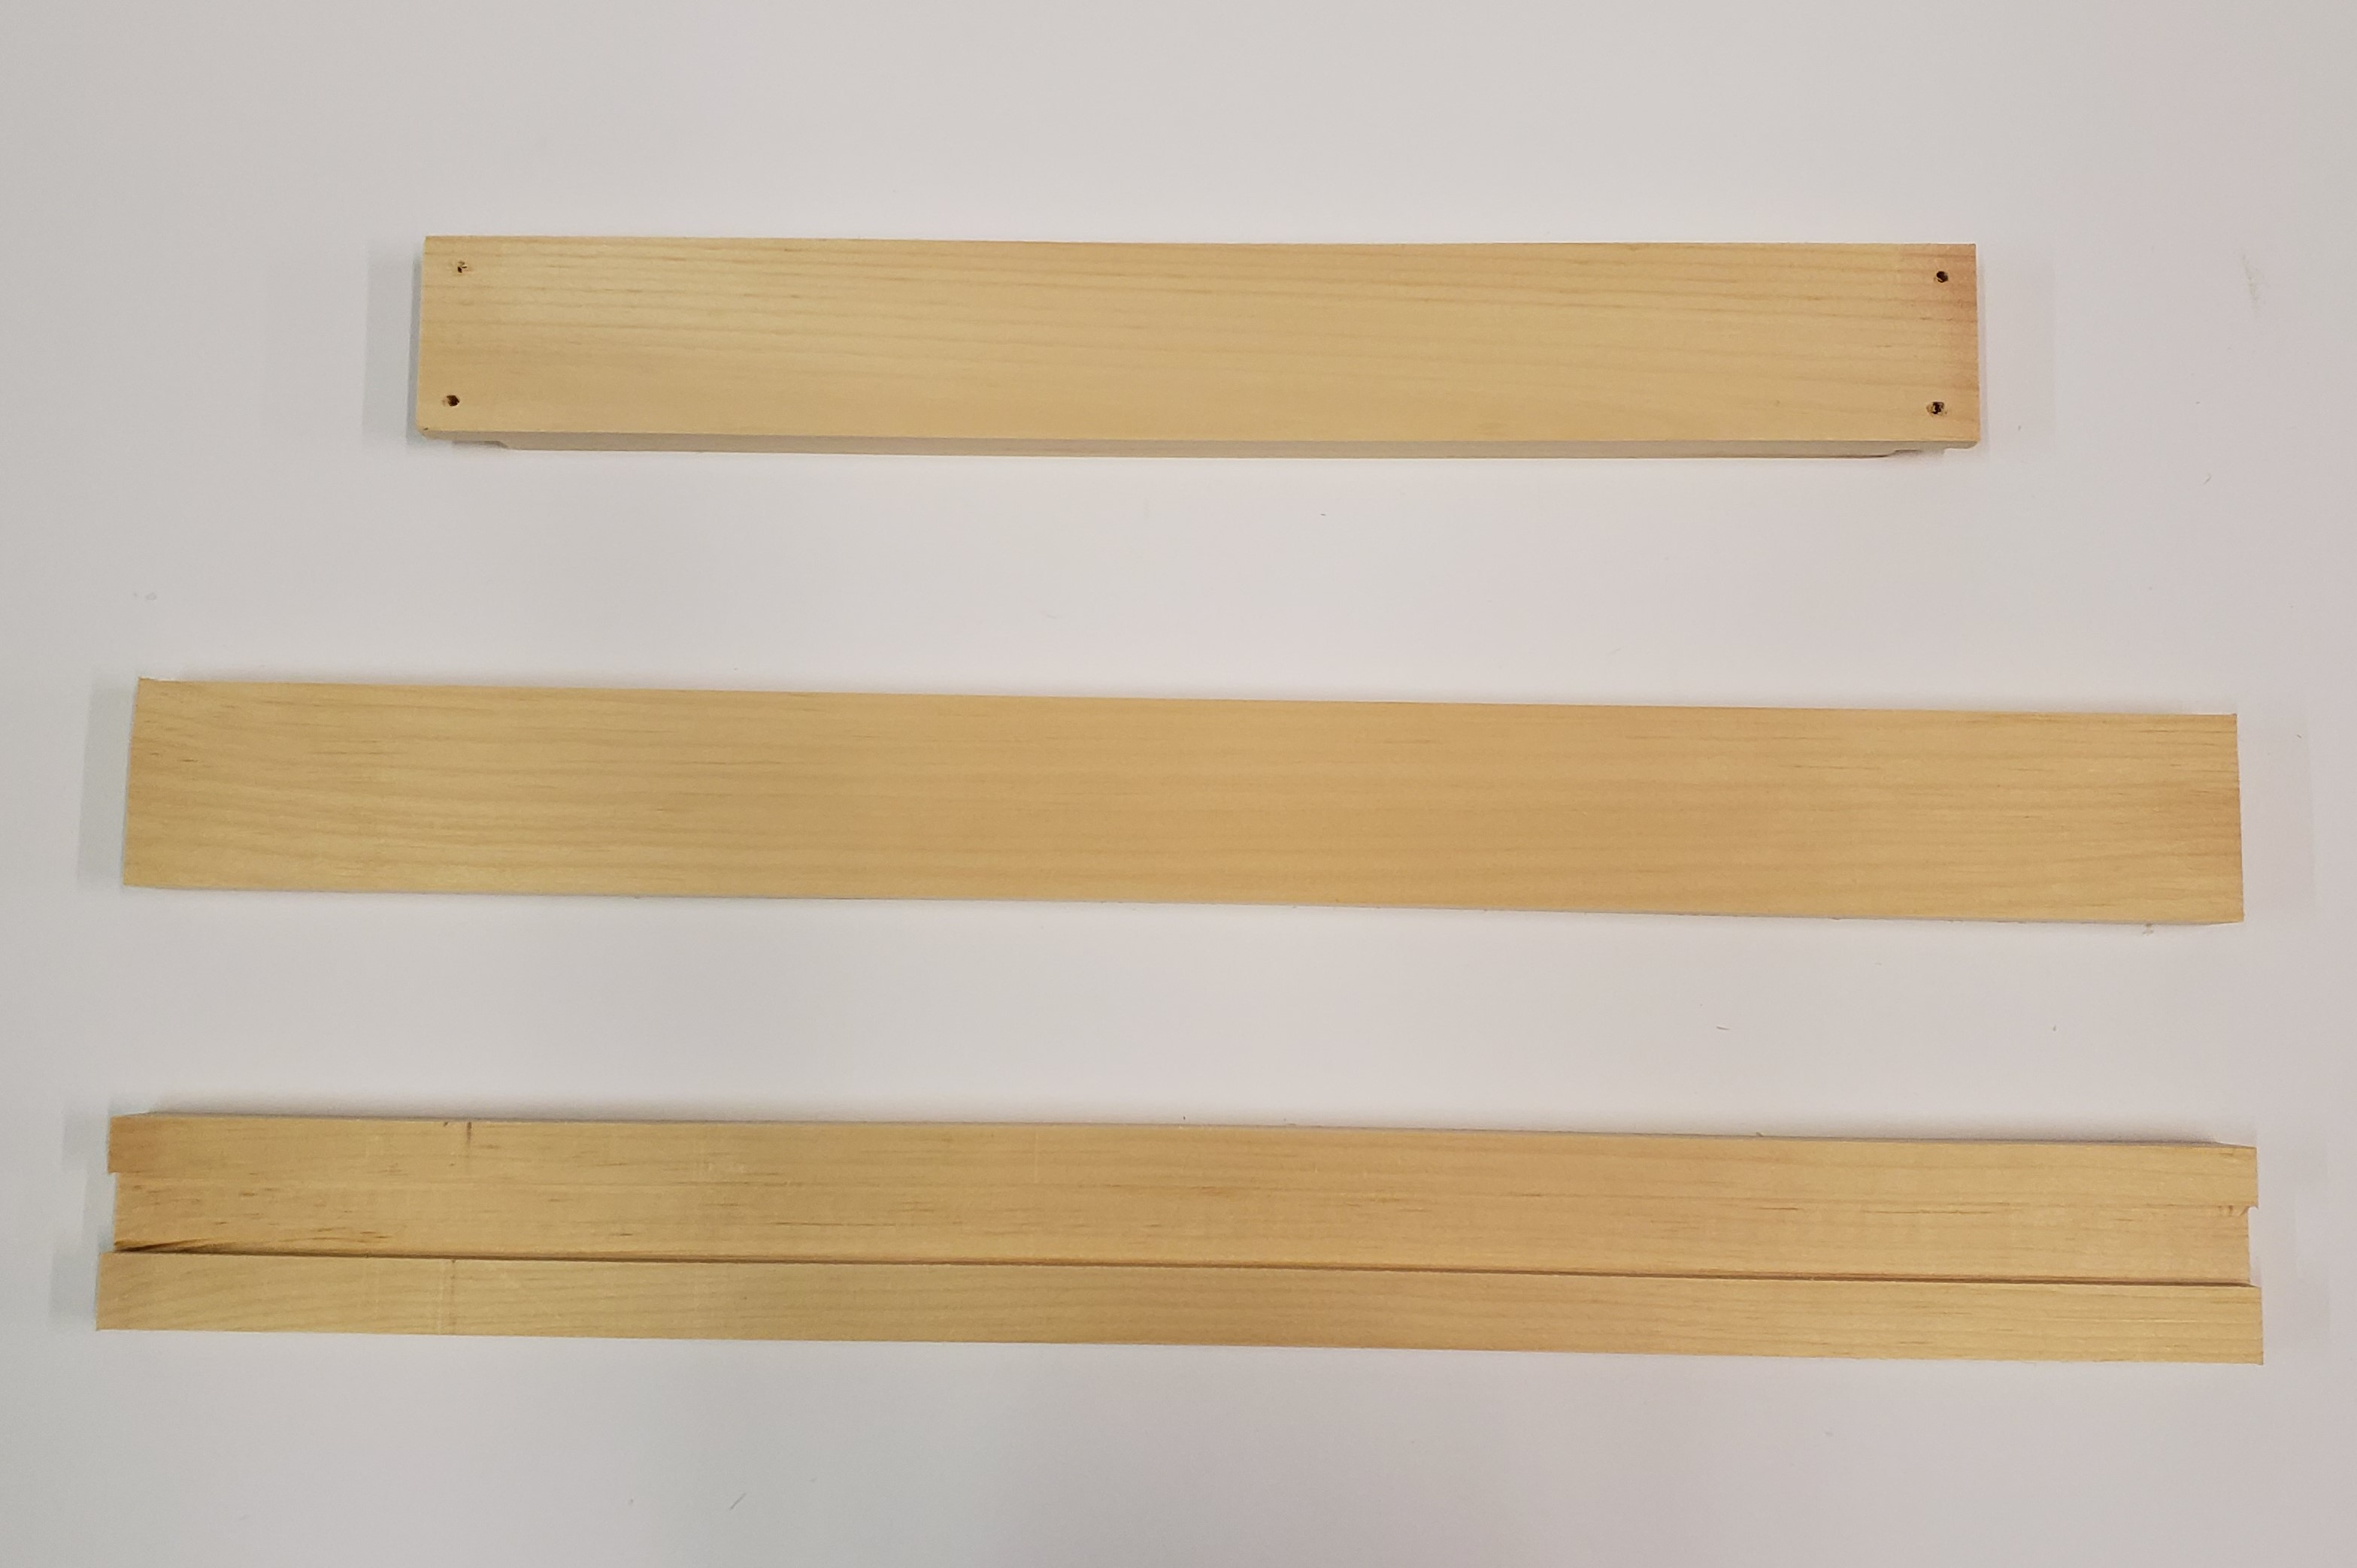 Pine Hive Bottom Rails (3 pc)